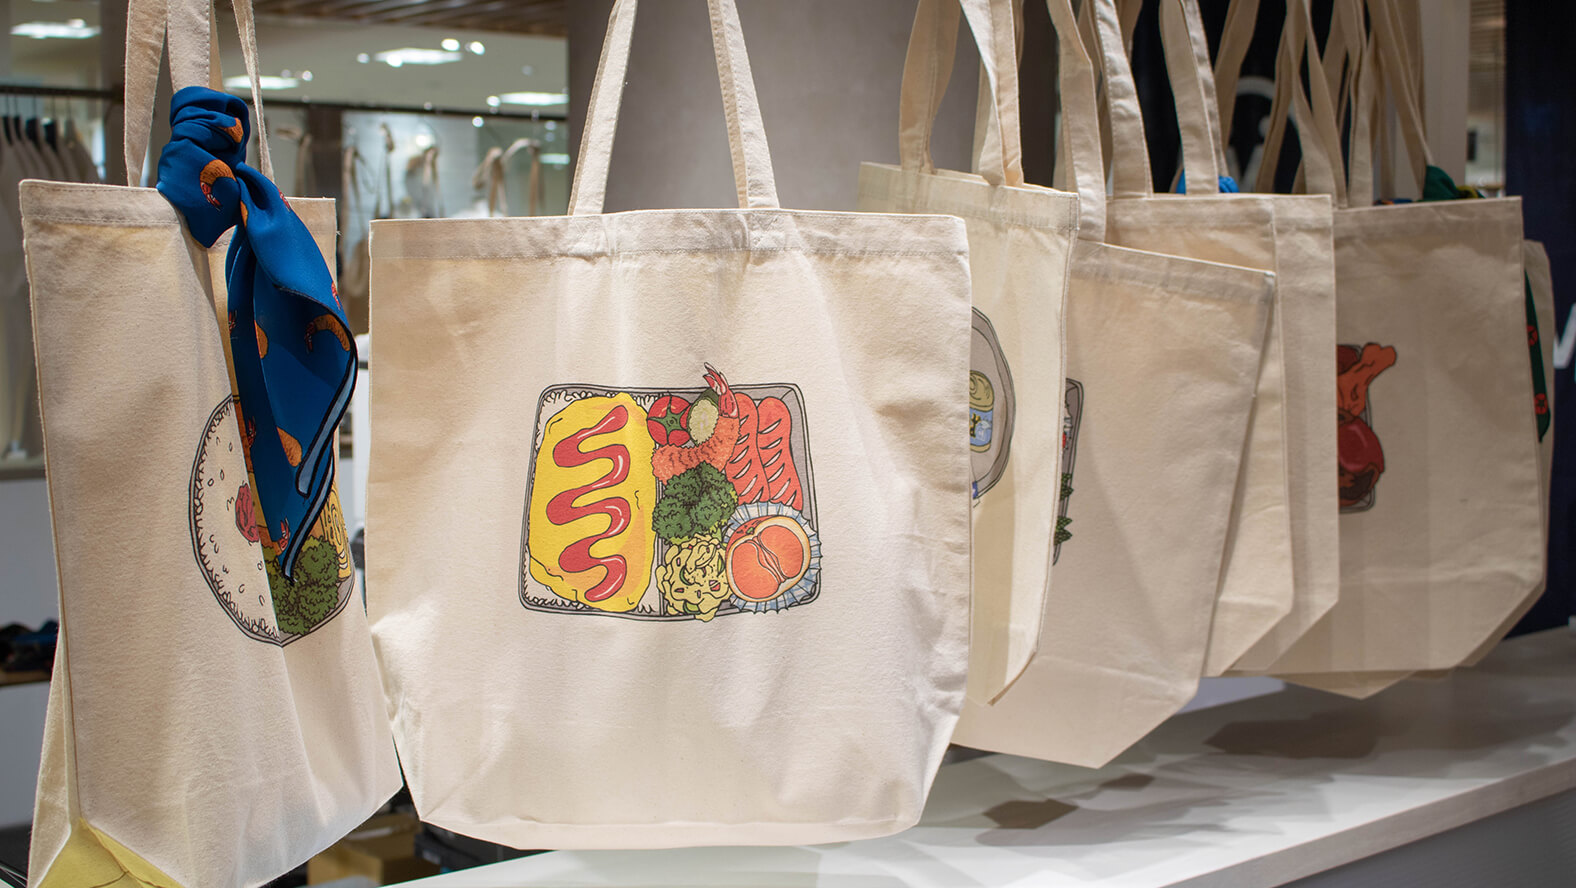 One-of-a-kind tote bags with unique bento lunchbox designs